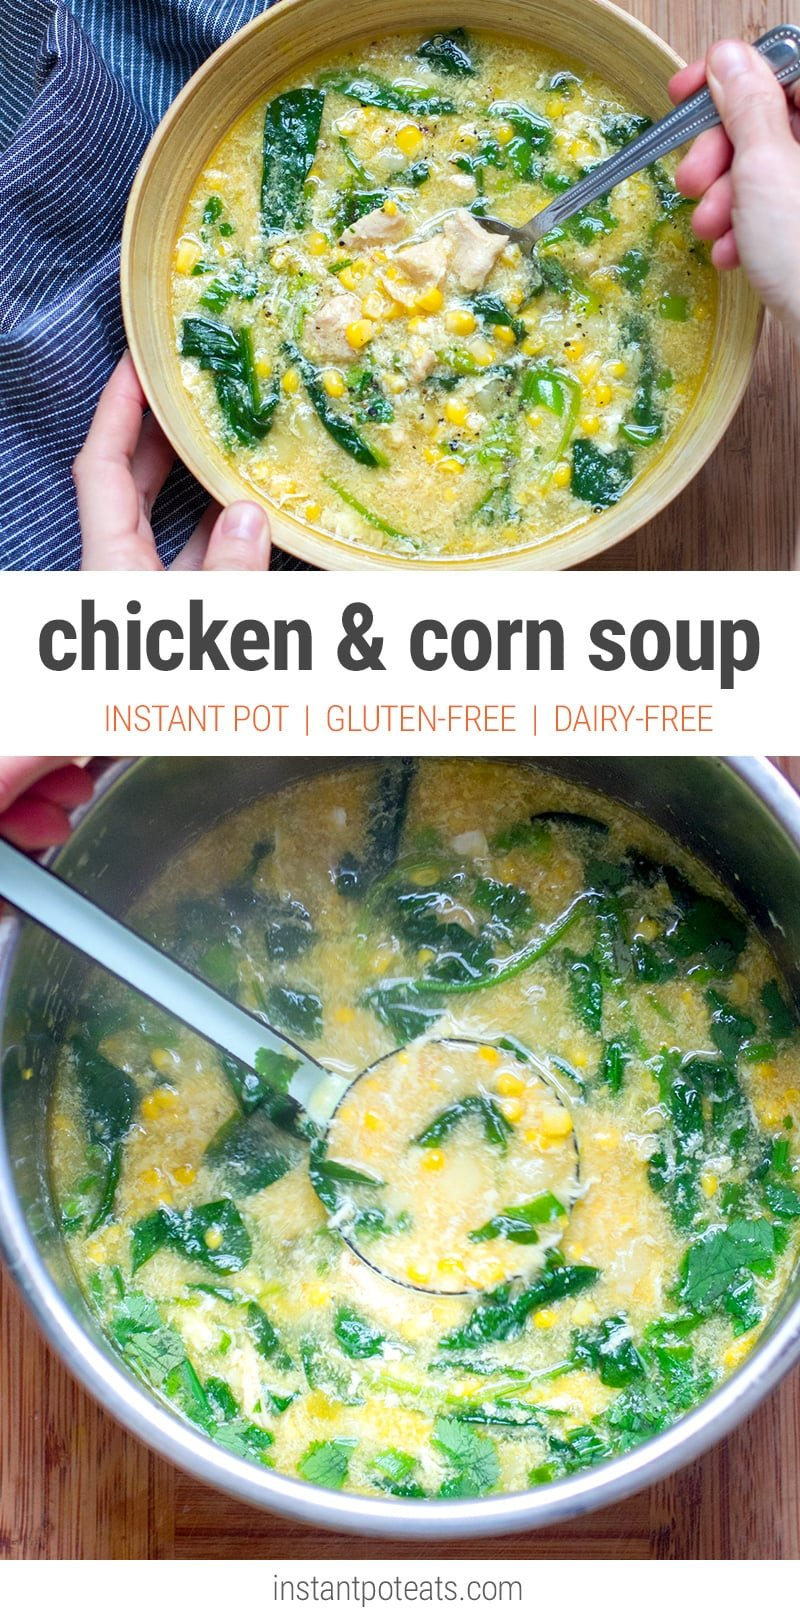 Instant Pot Chicken & Corn Soup With Spinach (Gluten-free, Dairy-free)